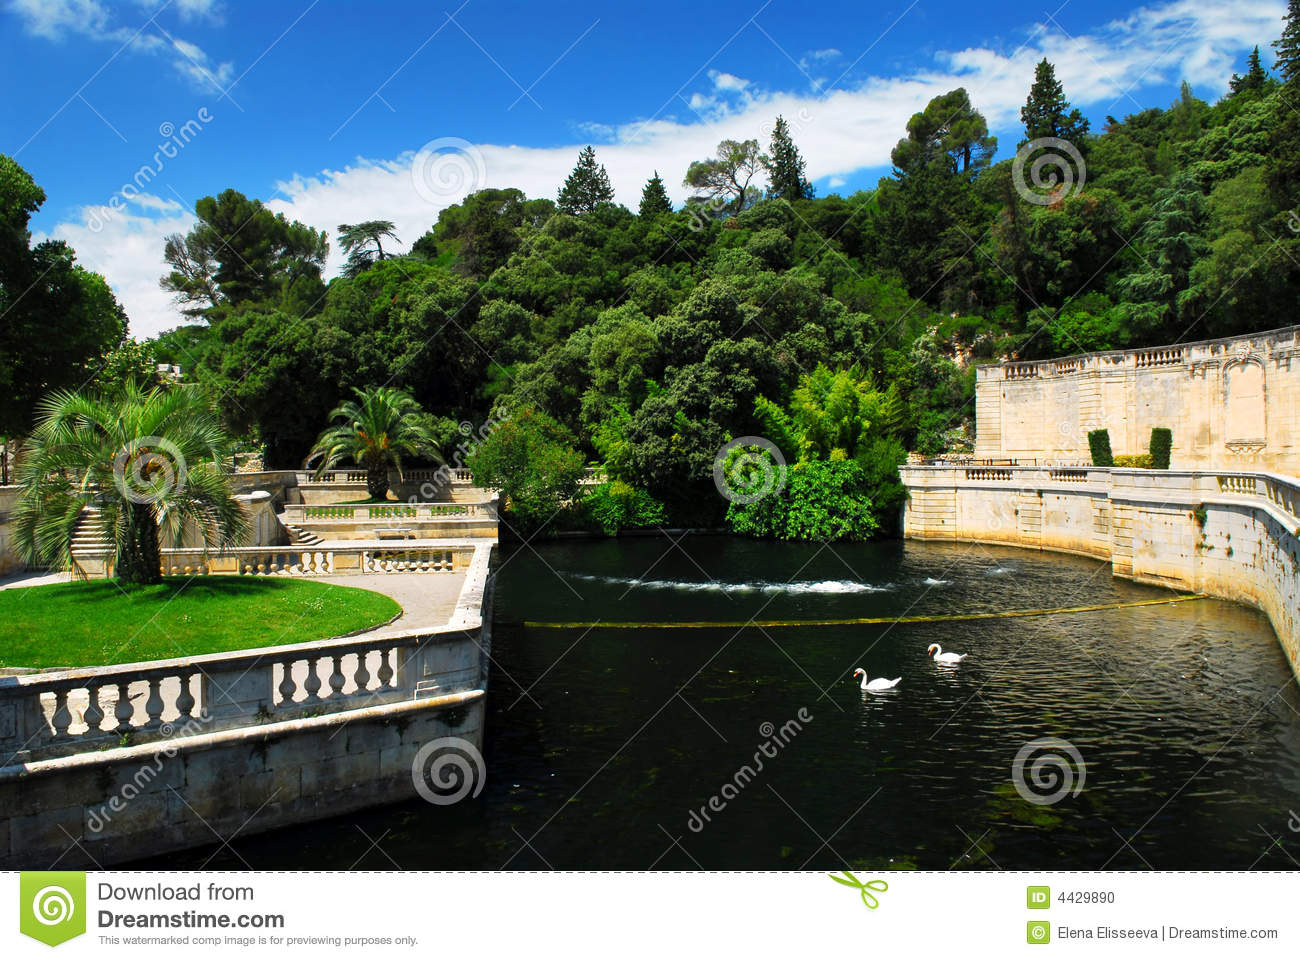 Jardin de la fontaine in nimes france stock photo image for Jardin je france